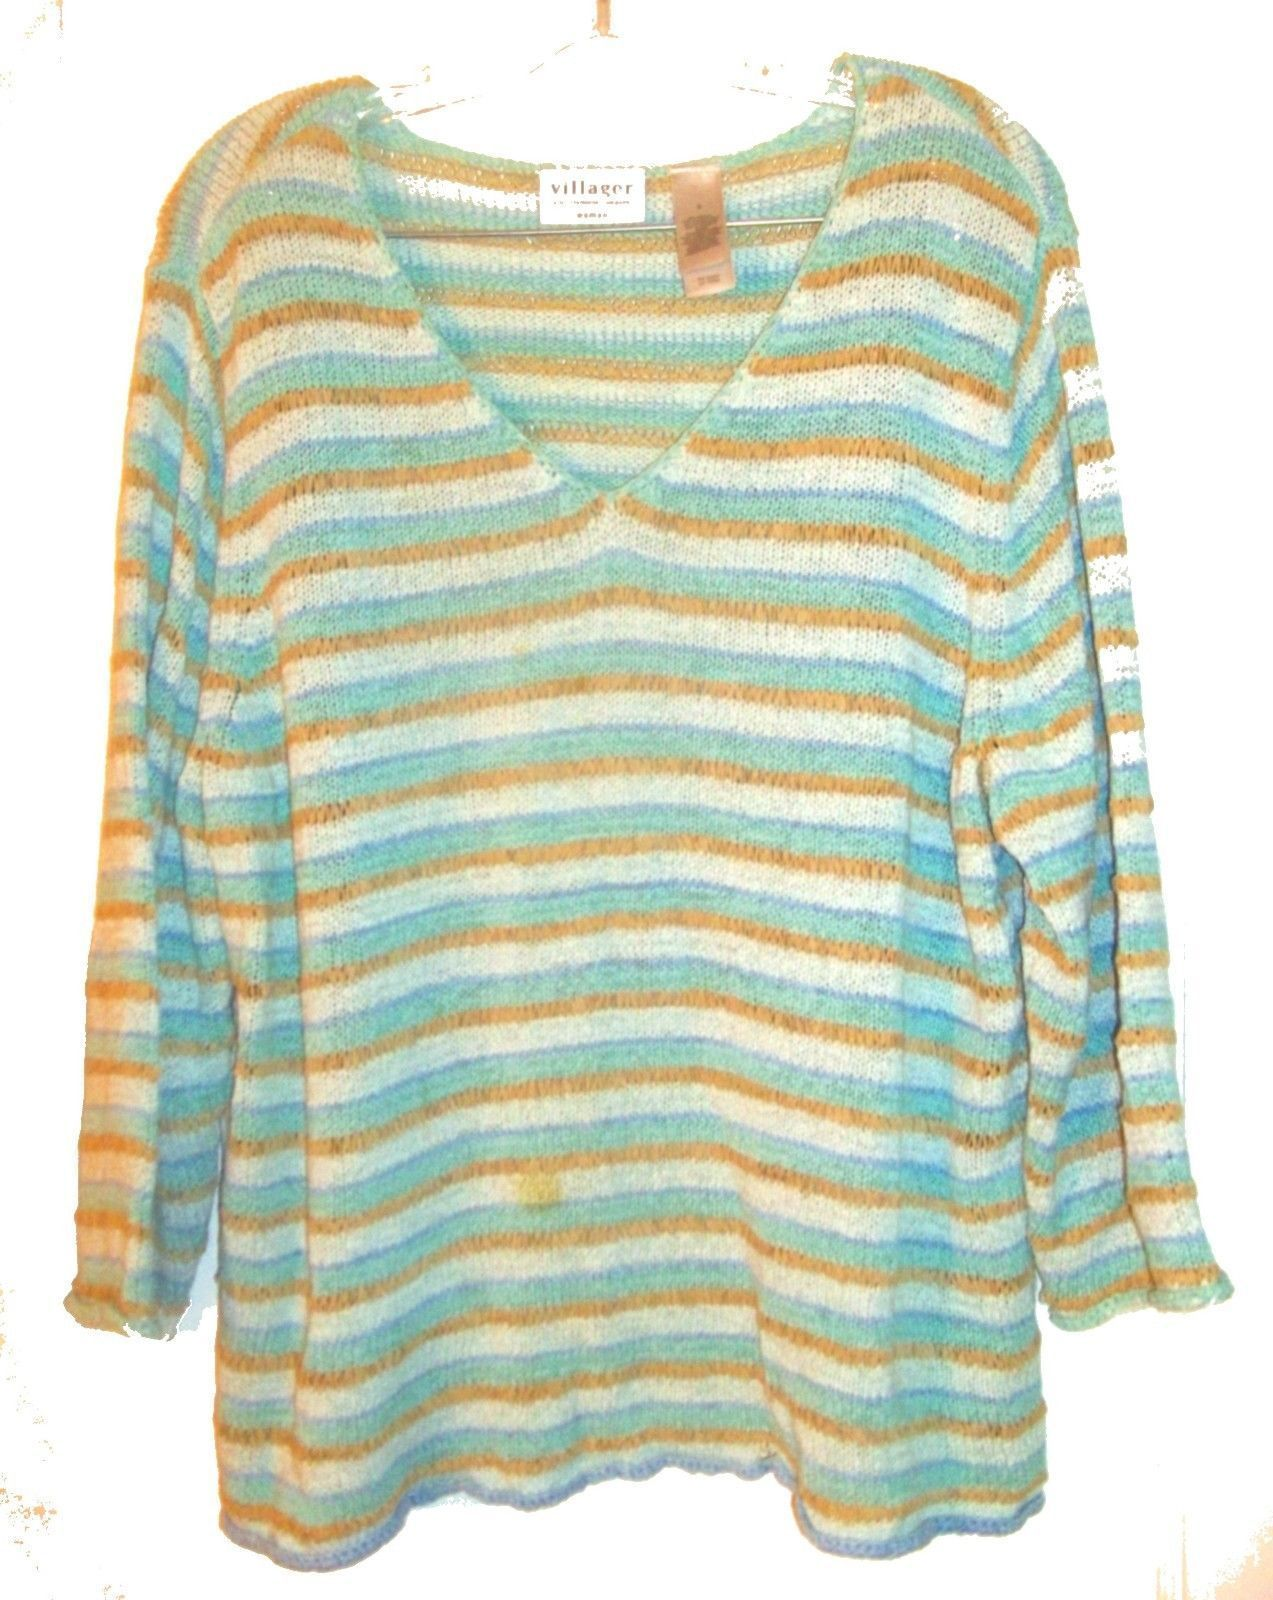 Size XL - Plus Size 3X ~ Villager Long Sleeve Sweaters, some with Beaded Accents image 8